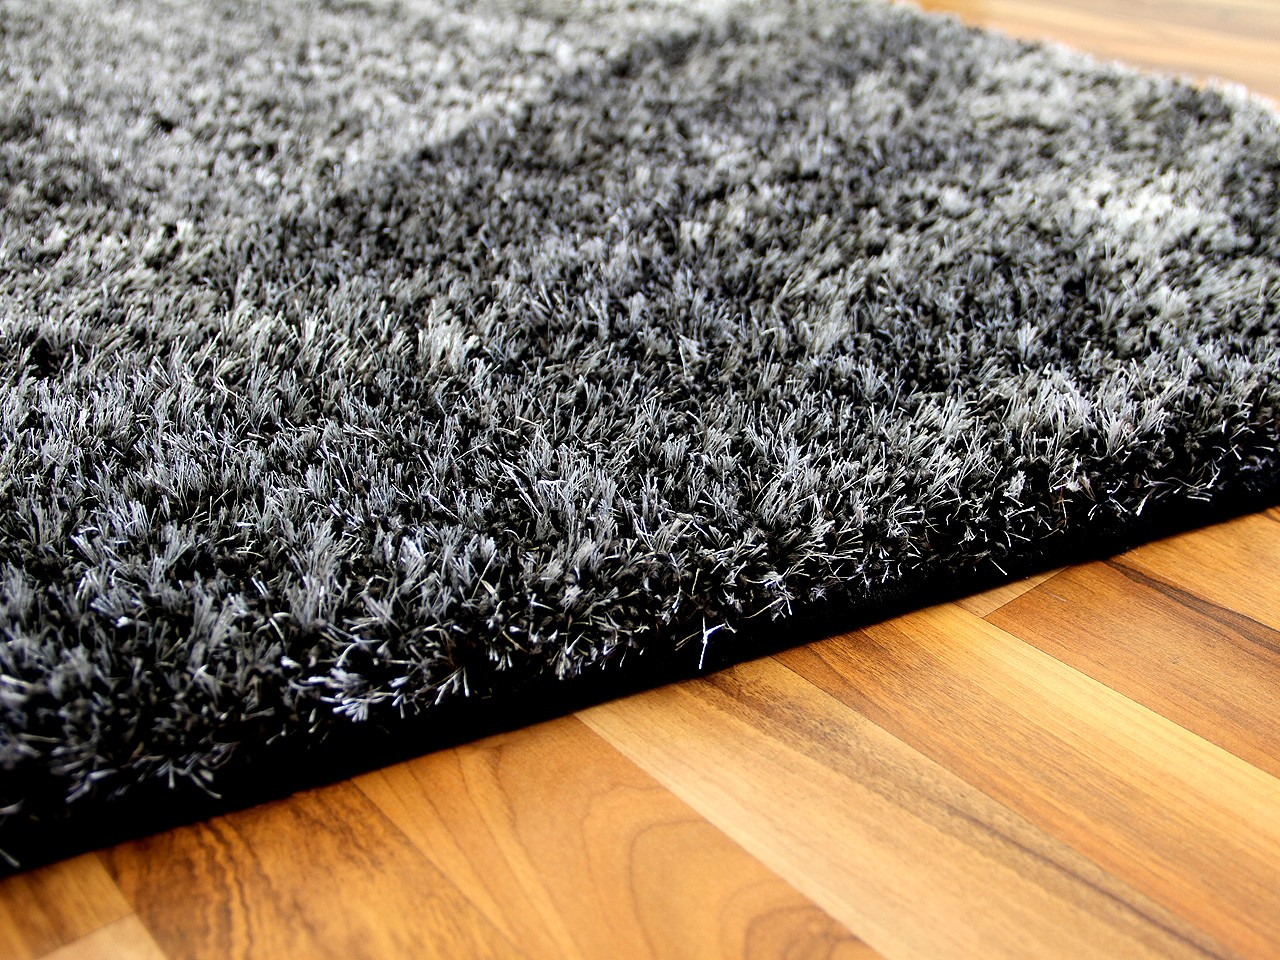 Teppich Shaggy Anthrazit Hochflor Shaggy Teppich Luxus Feeling Mix Anthrazit In 24 Größen